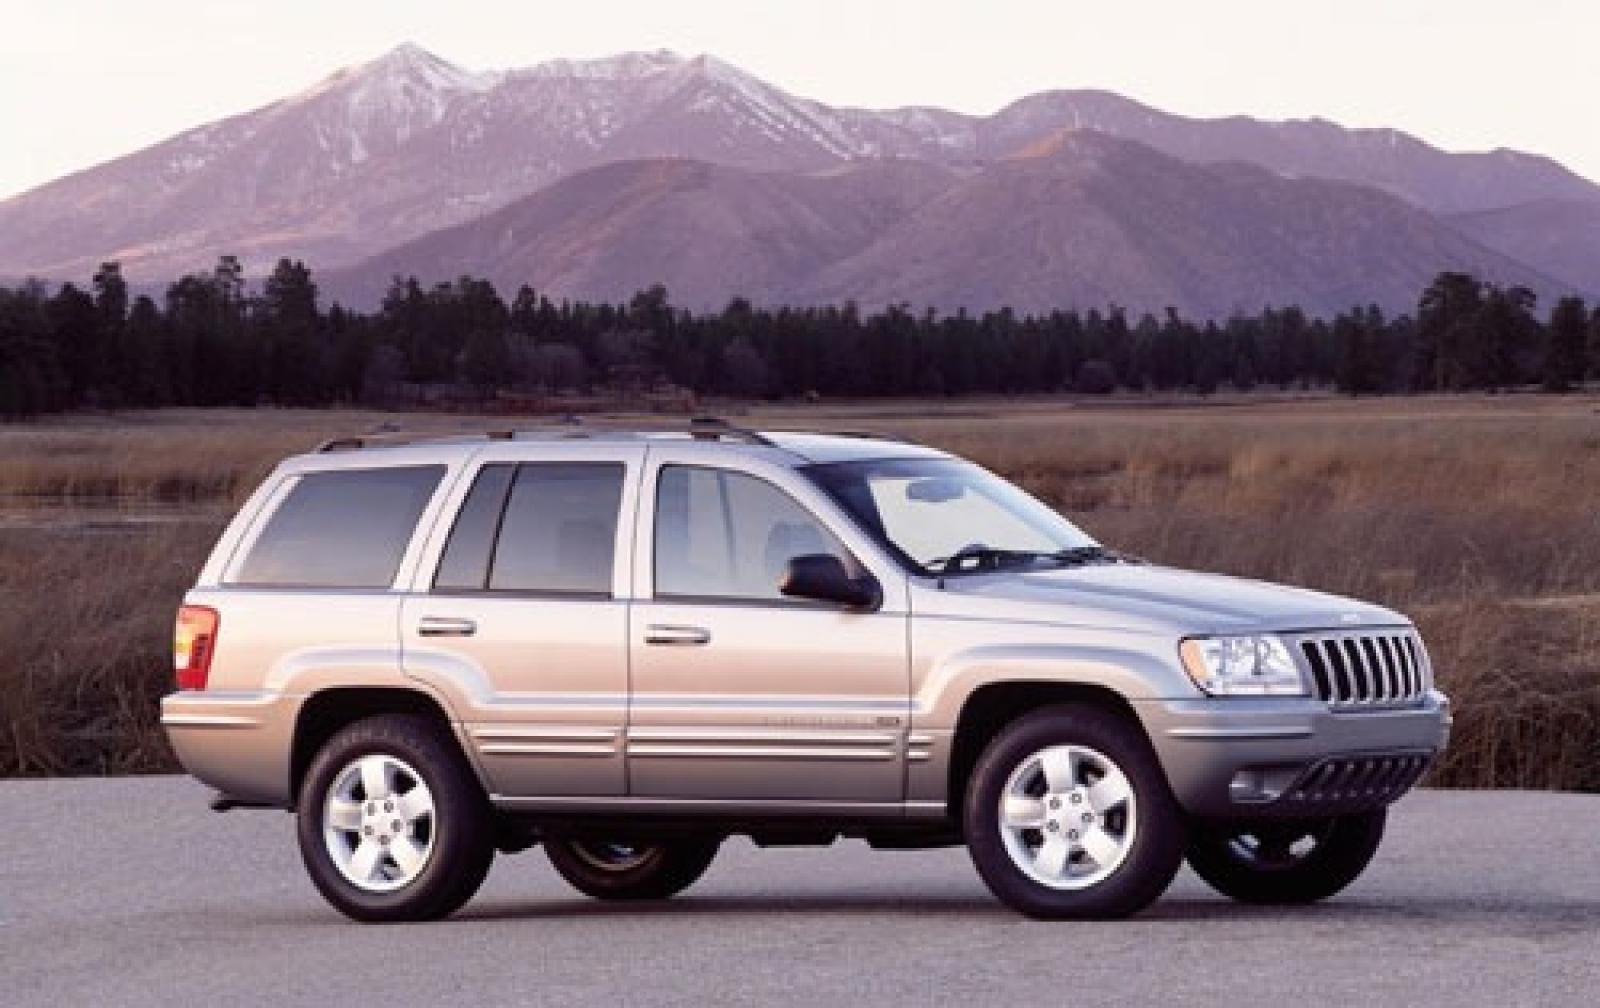 2001 Jeep Grand Cherokee Information And Photos Zombiedrive 1999 Limited Exterior 3 800 1024 1280 1600 Origin